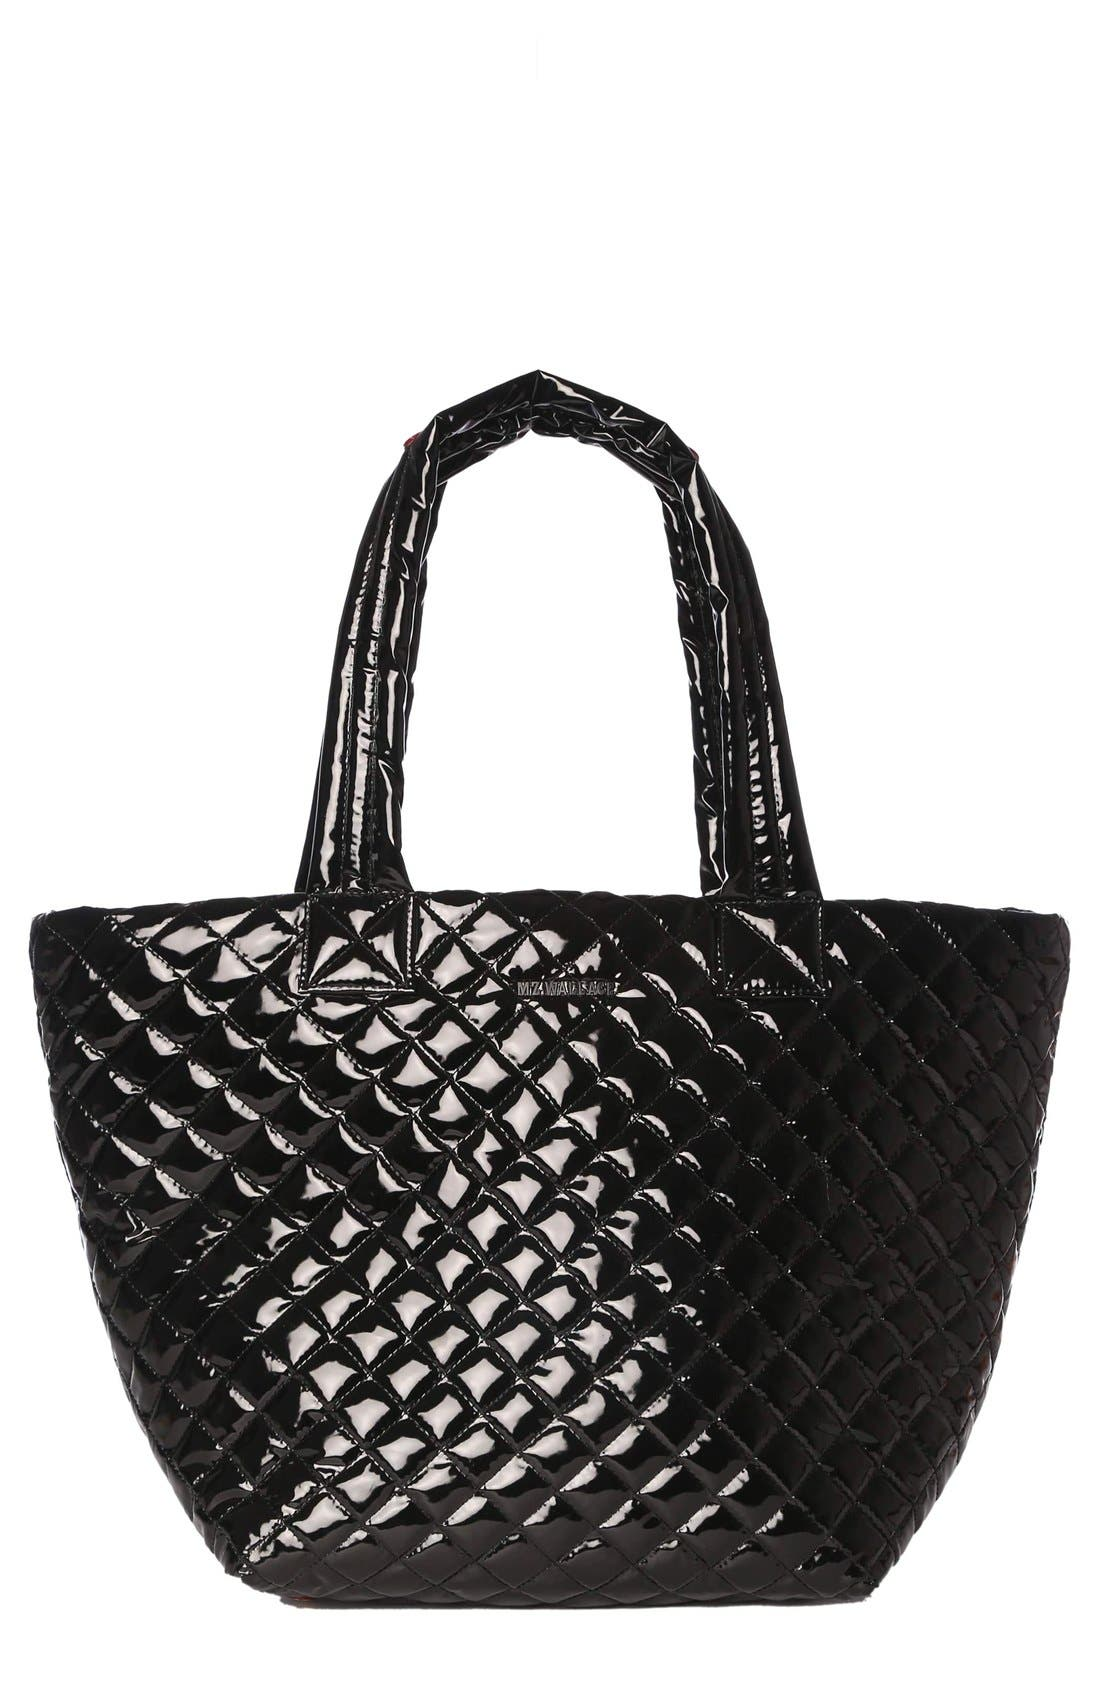 MZ WALLACE Medium Metro Quilted Lacquer Tote